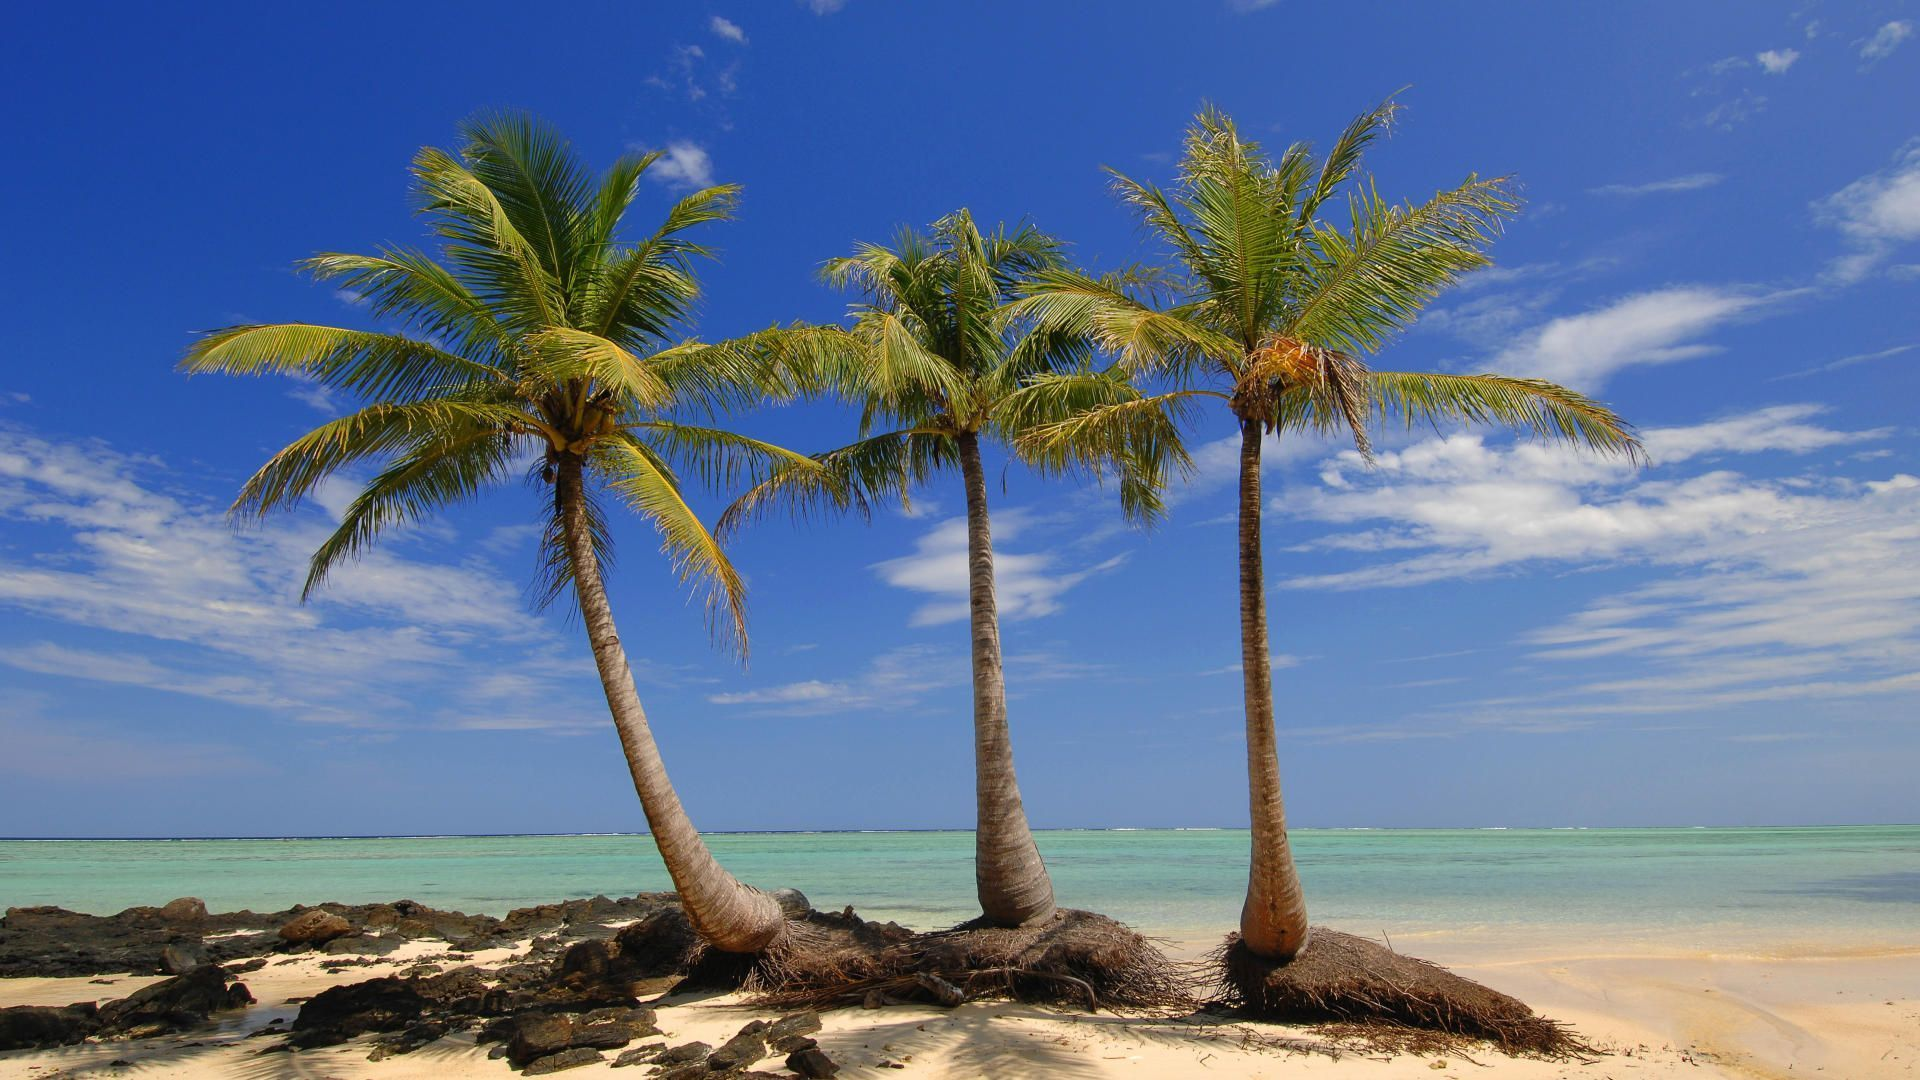 Palms Isl Madagascar Nature Background wallpapers HD   118394 1920x1080